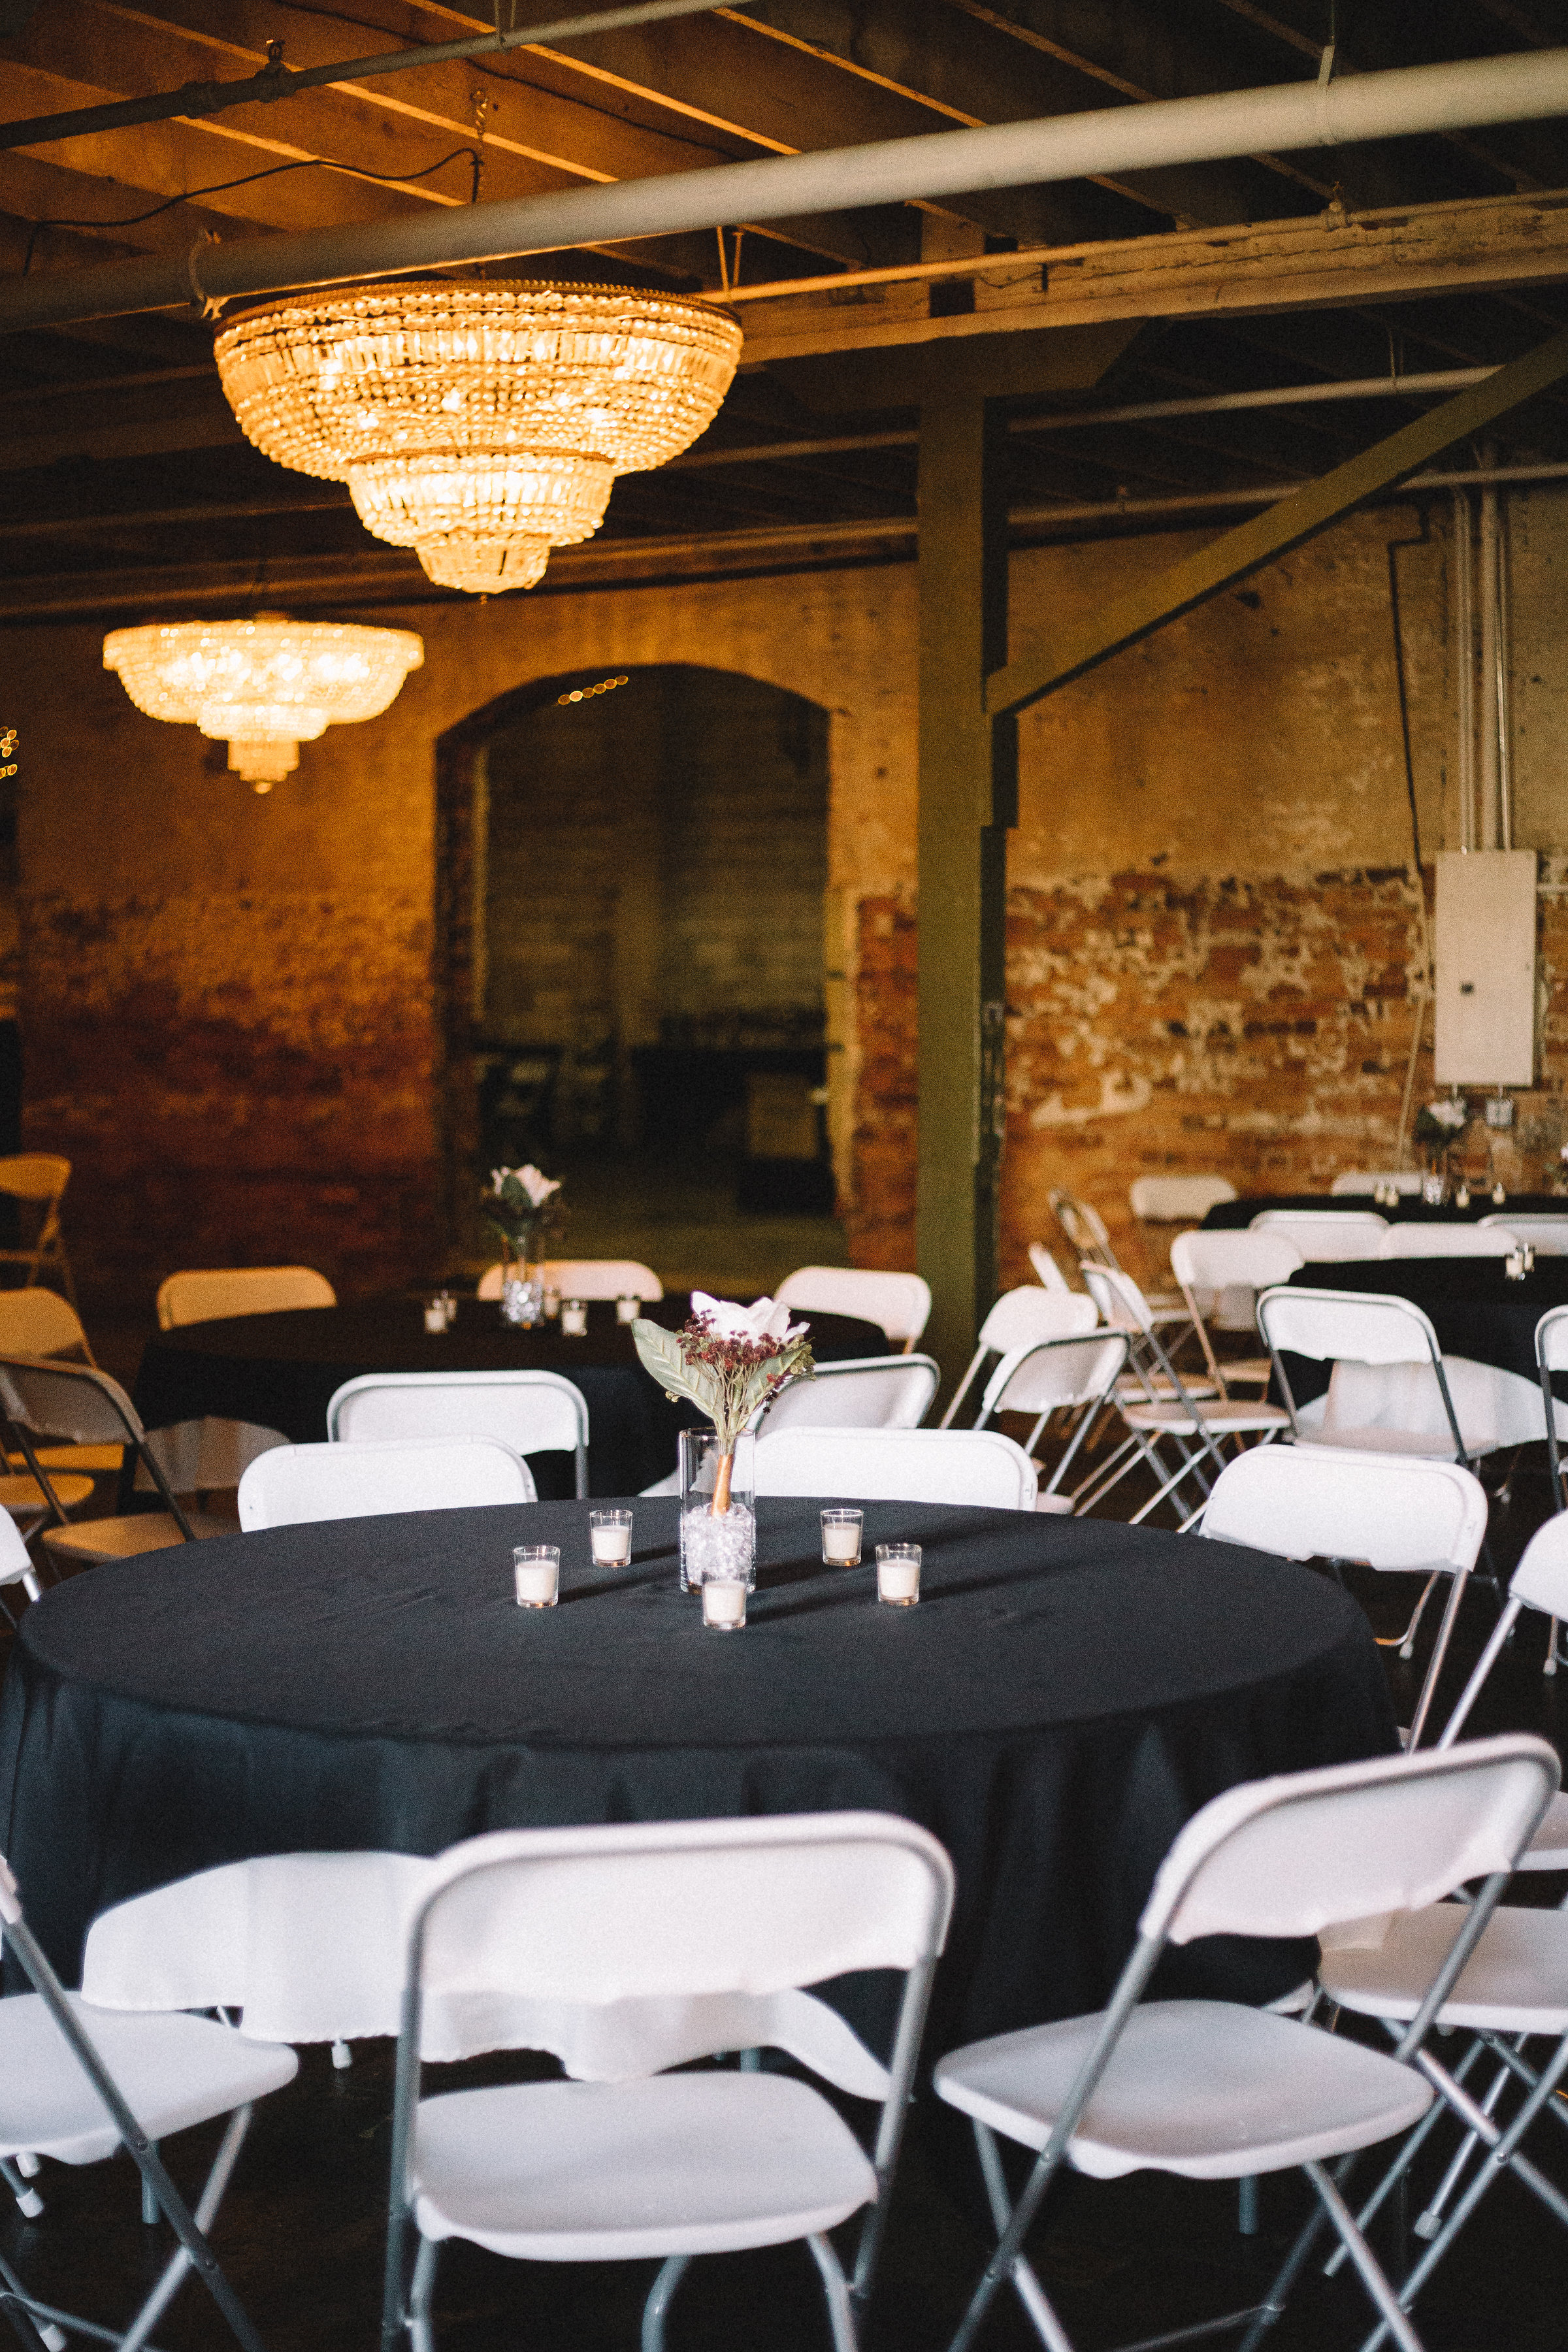 A few of the reception tables ready for guests to take their seats.